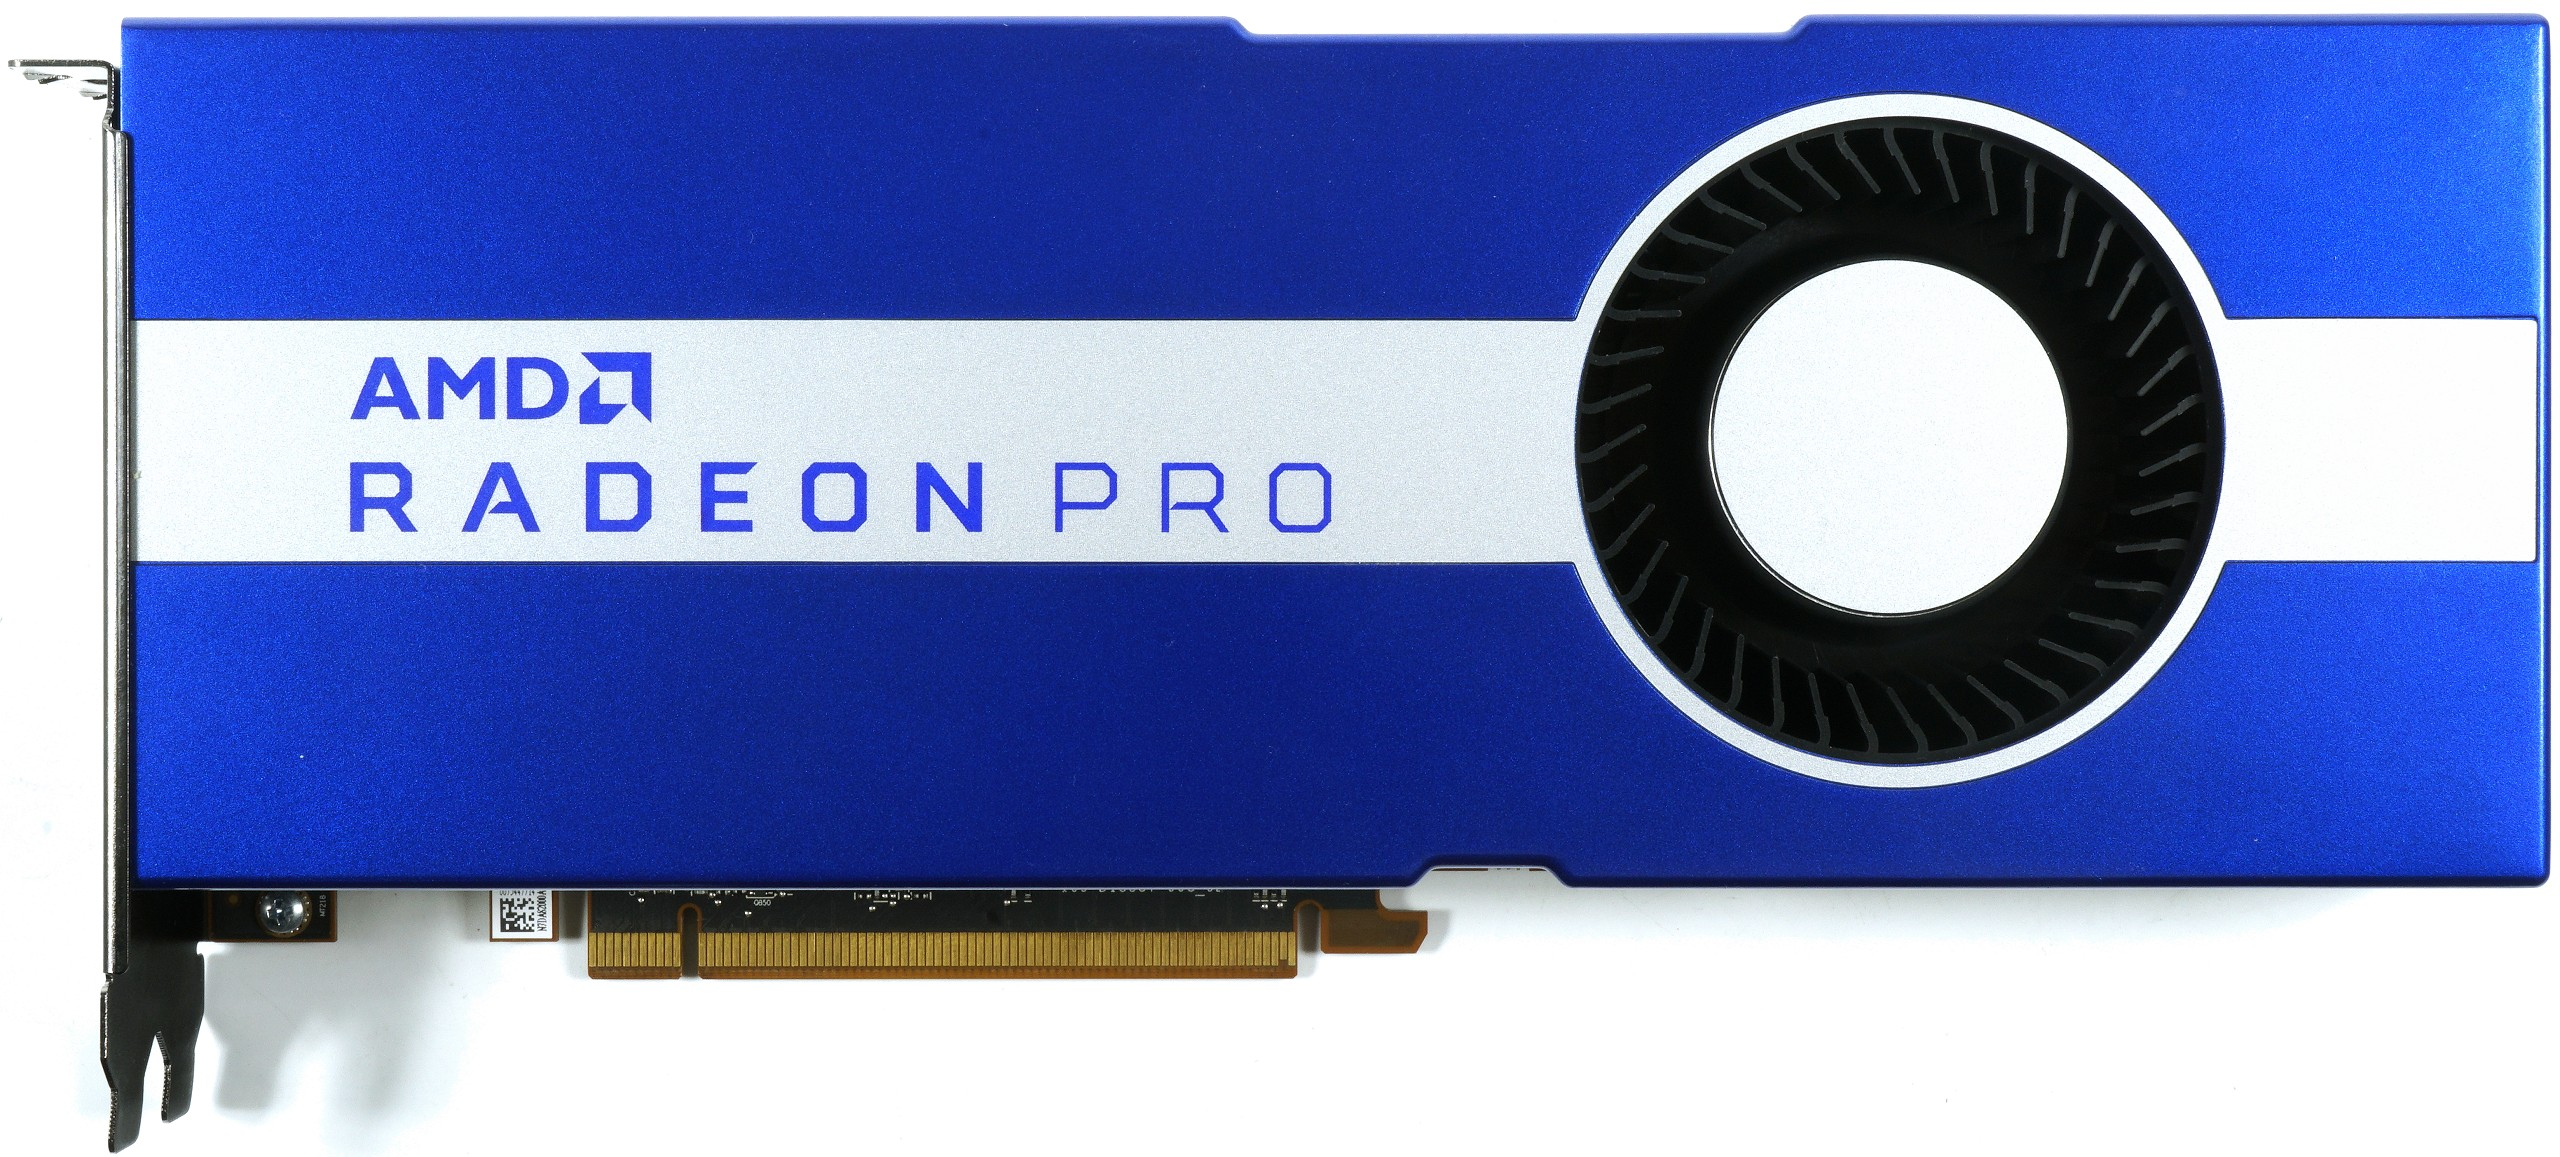 AMD Radeon Pro W5700 Review - price and performance are right, but it's enough for the Quadro RTX 4000?